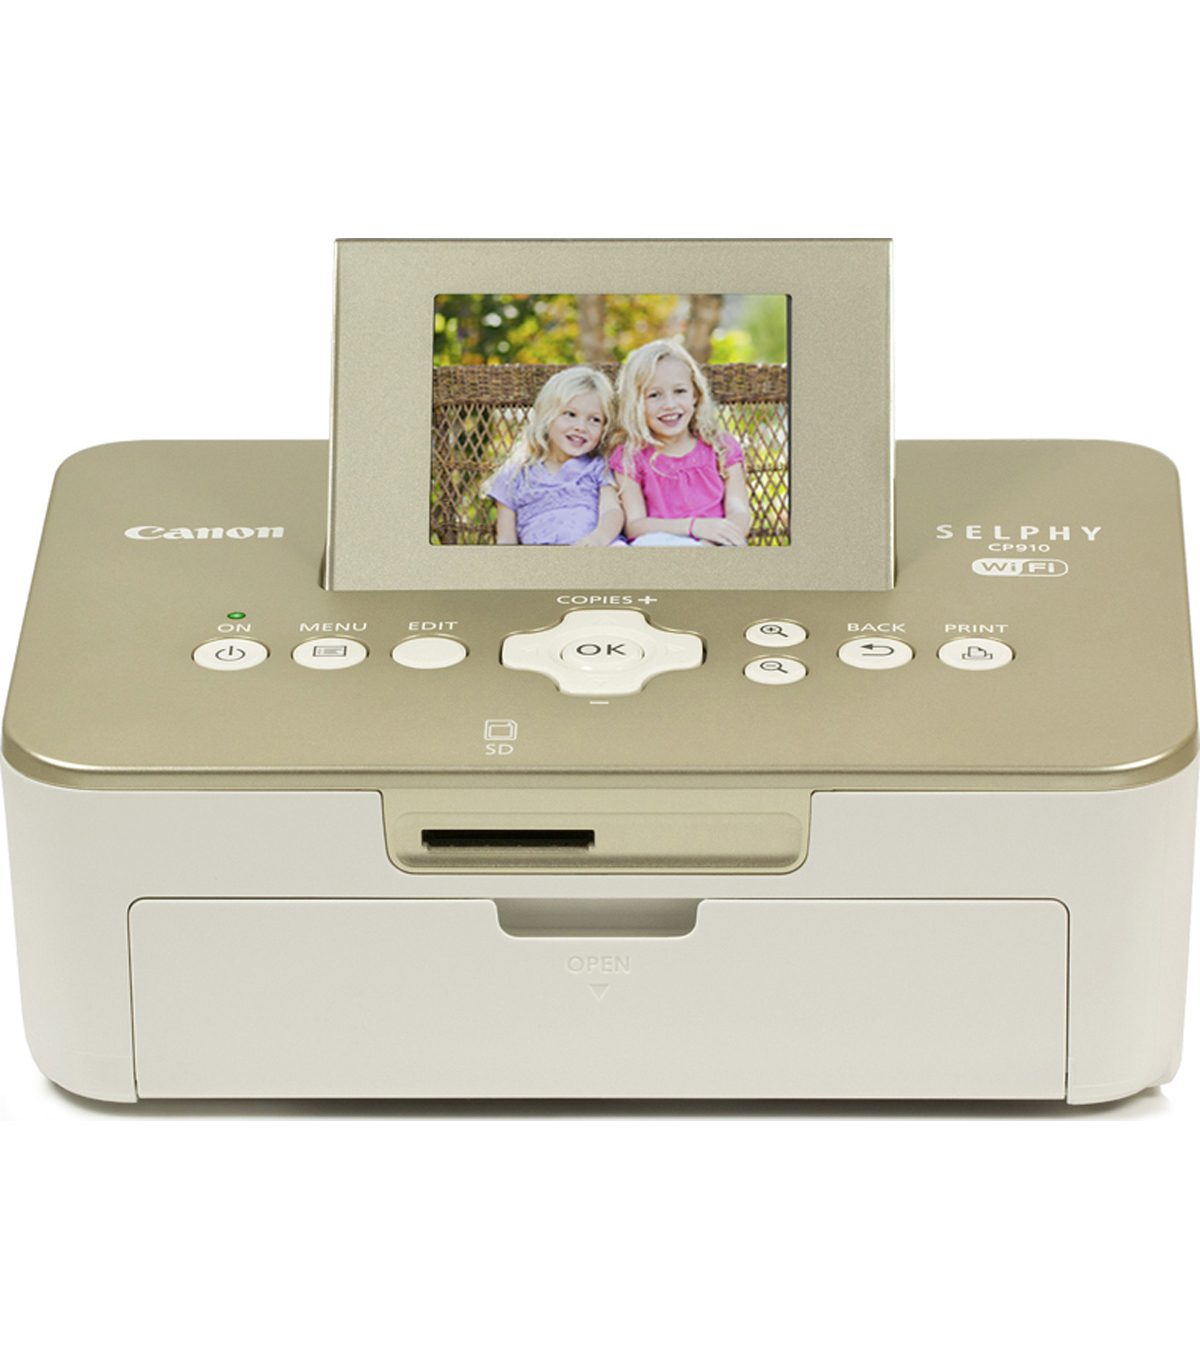 Canon Selphy Cp910 Wireless Compact Photo Printer Review